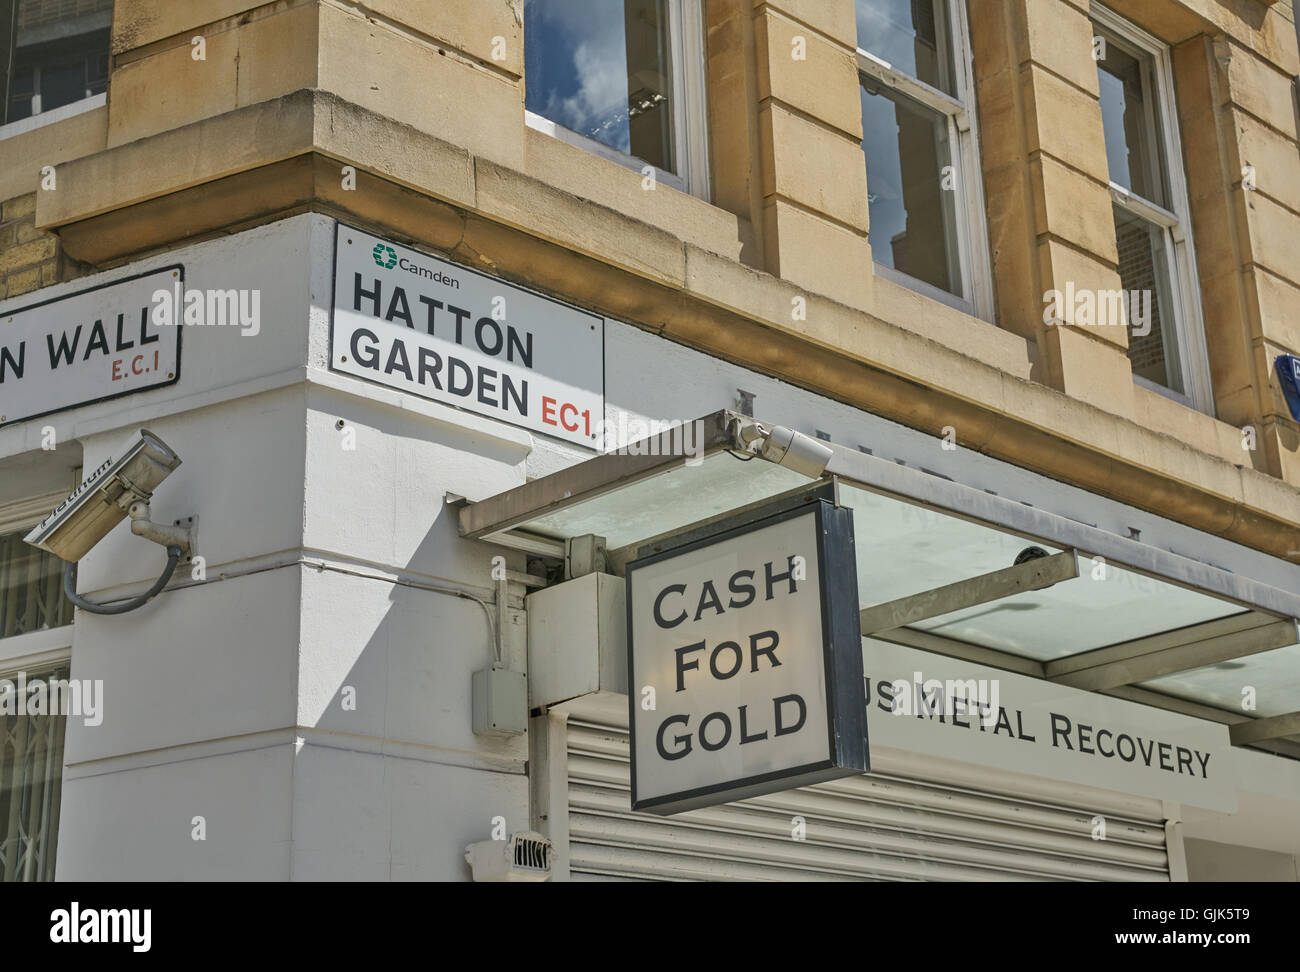 Hatton Garden London,  metal recovery, gold shop - Stock Image